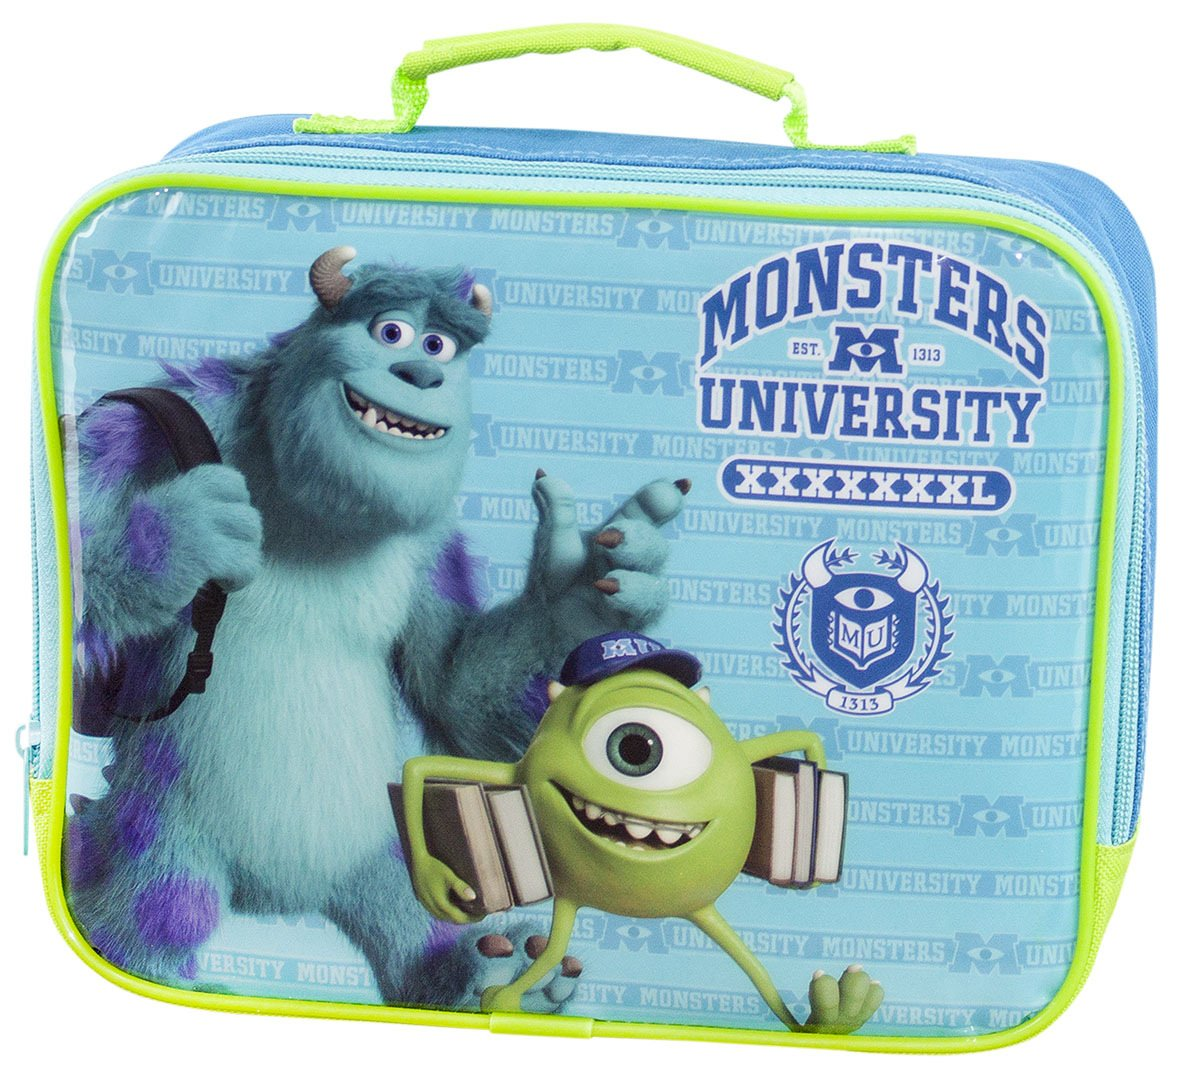 BRAND NEW MONSTERS INC UNIVERSITY MIKE & SCULLY LUNCG BAG-CO106 MINI